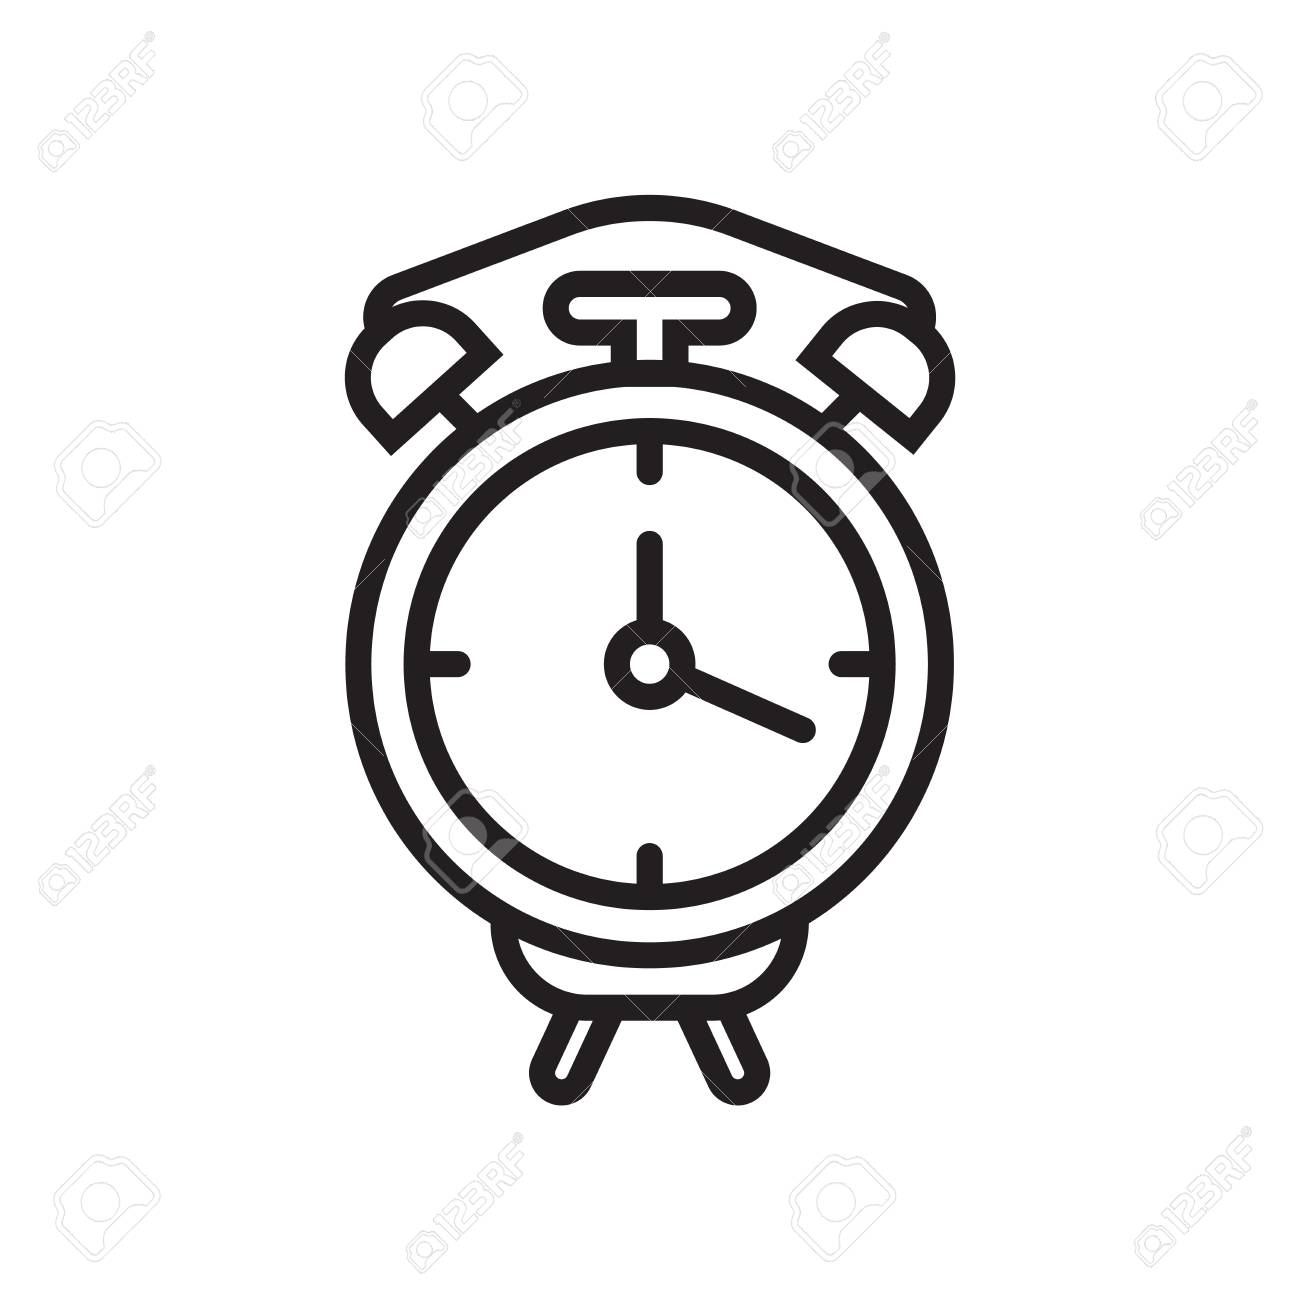 Alarm clock icon vector isolated on white background for your